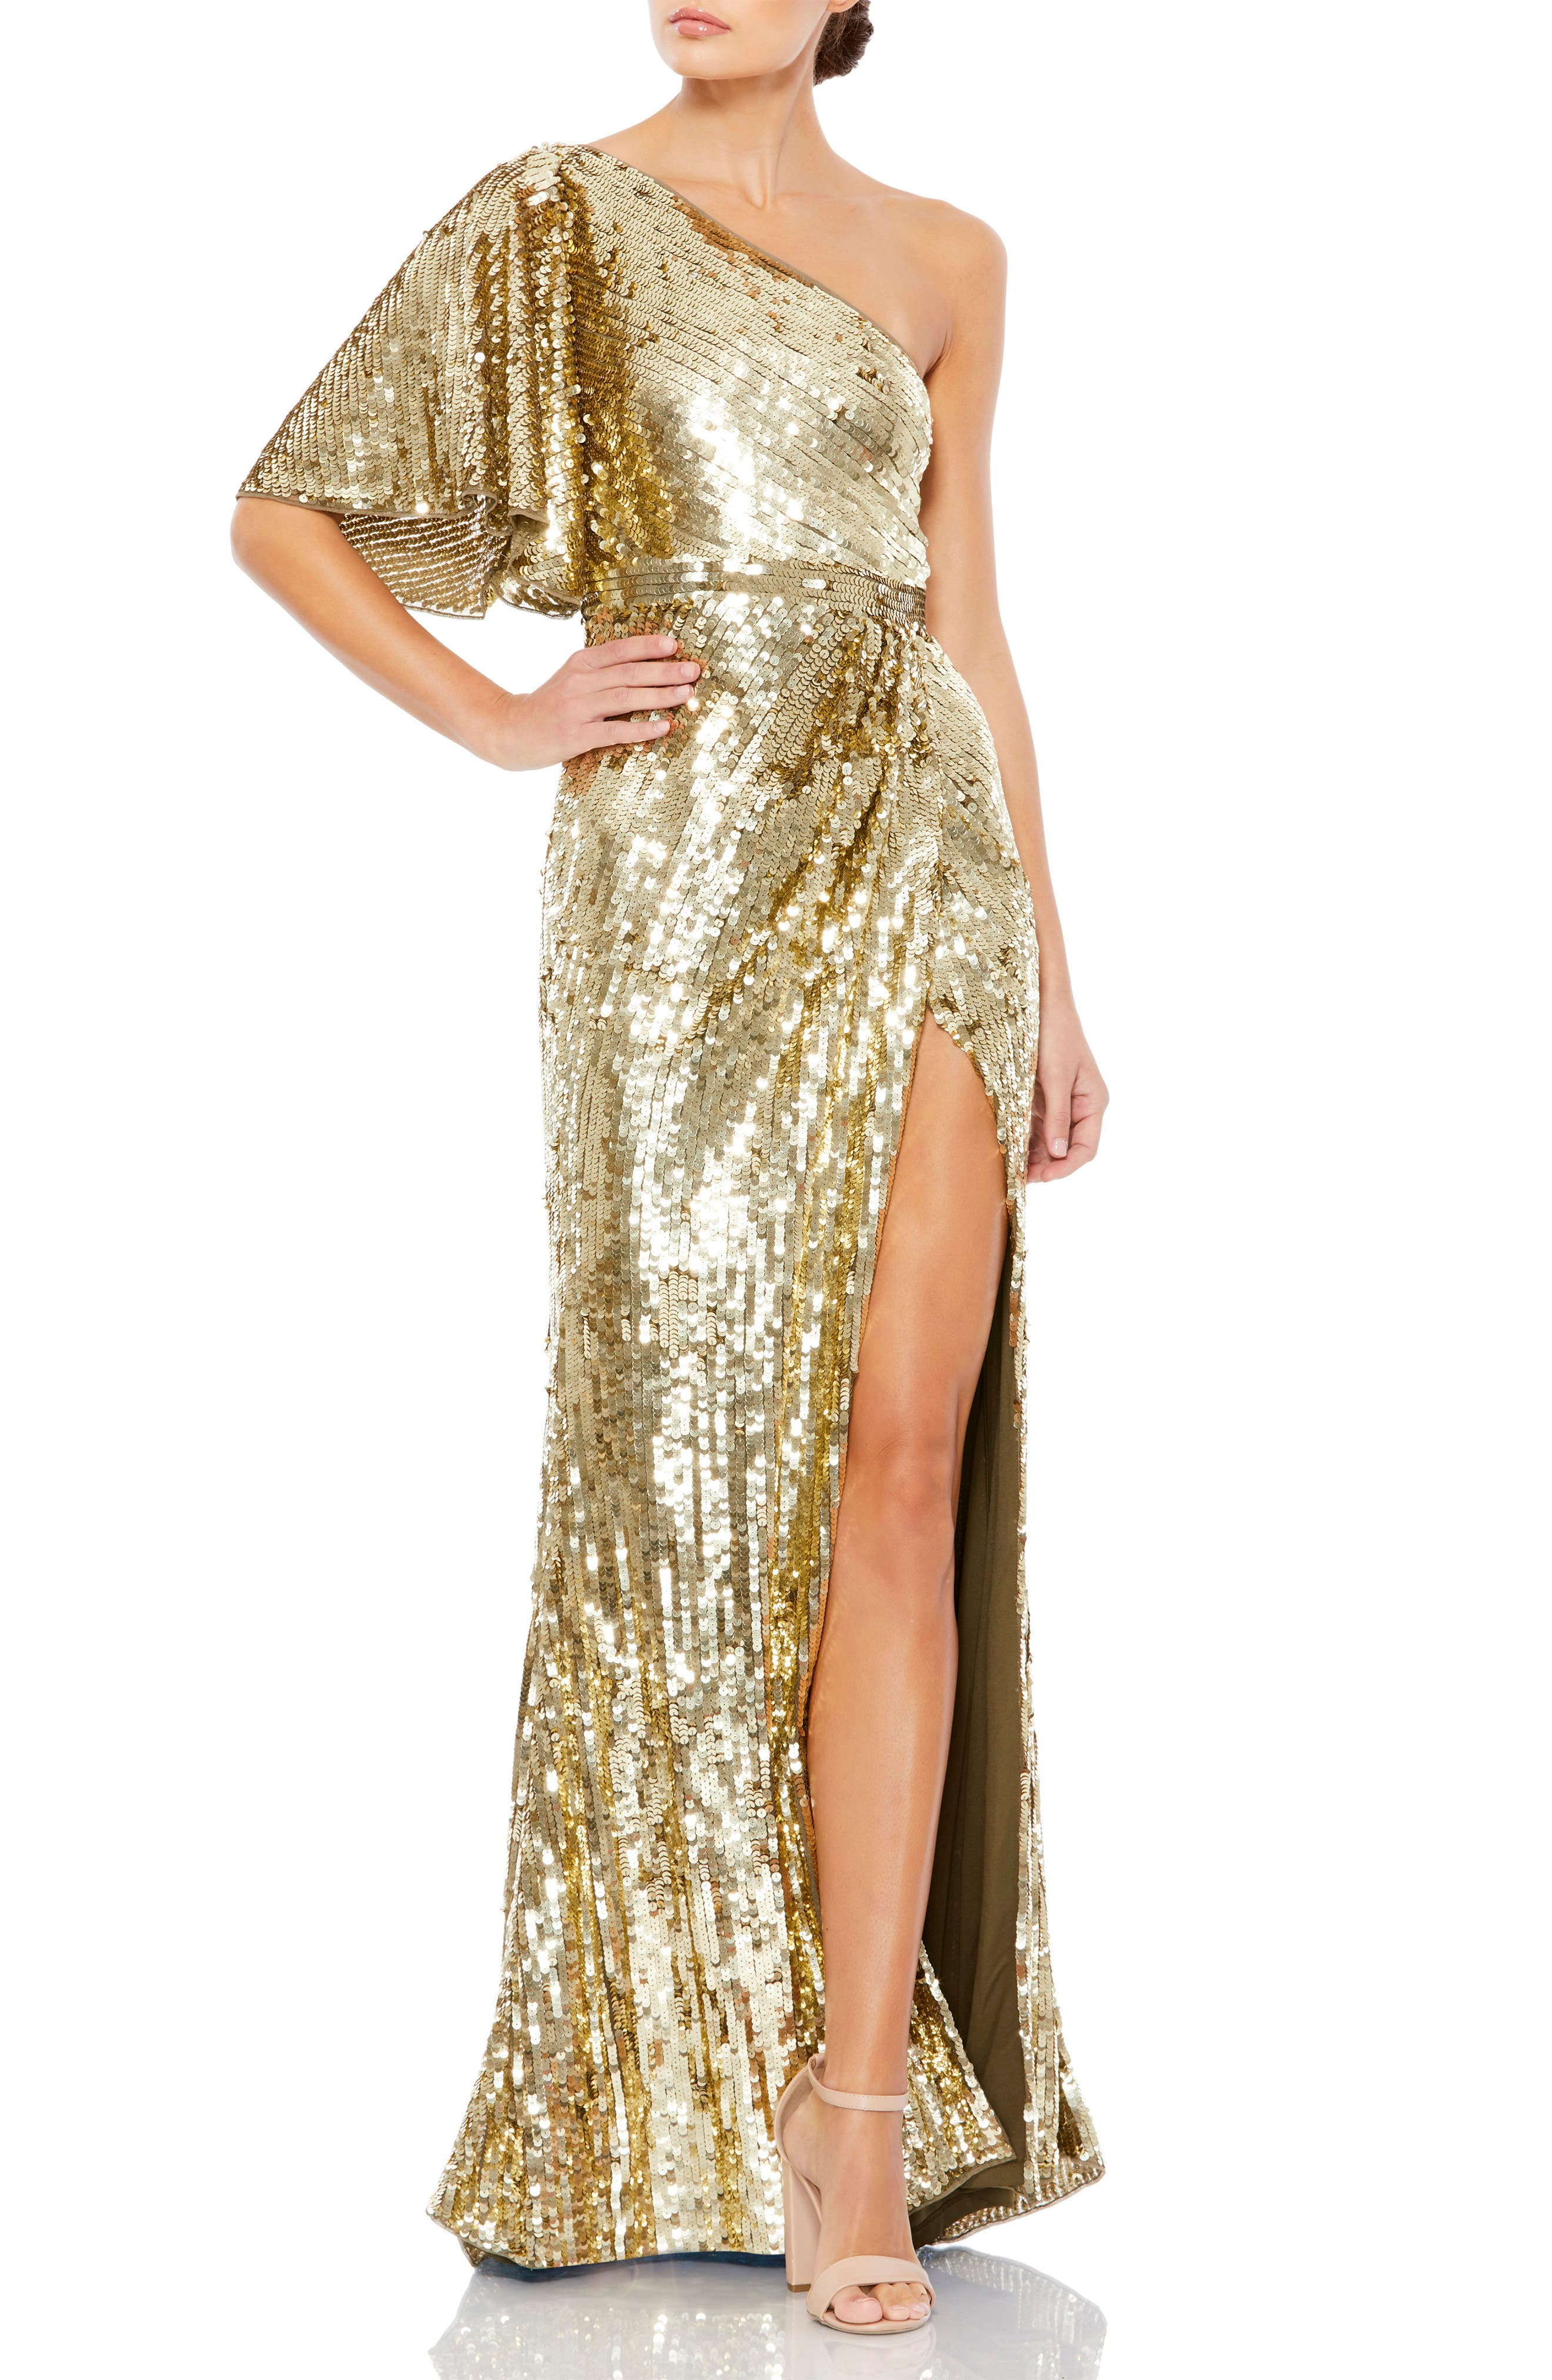 70s Prom, Formal, Evening, Party Dresses Womens MAC Duggal One-Shoulder Sequin Column Gown Size 12 - Metallic $598.00 AT vintagedancer.com